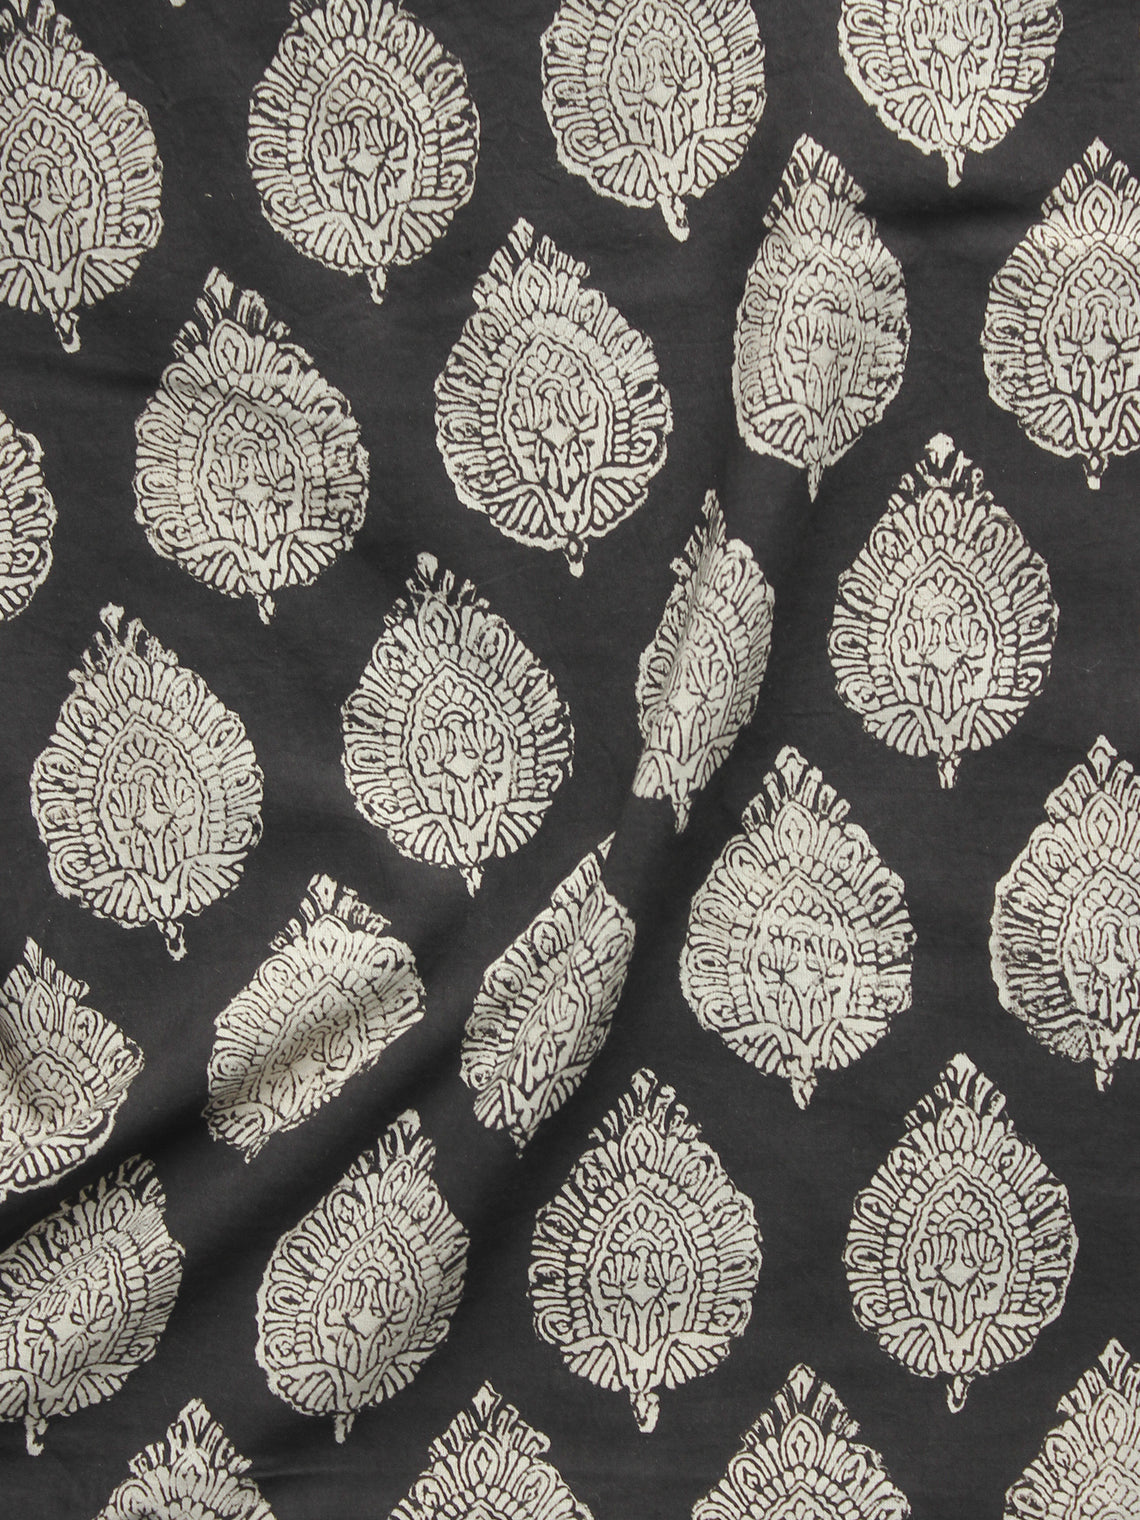 Black Ivory Hand Block Printed Cotton Fabric Per Meter - F001F902